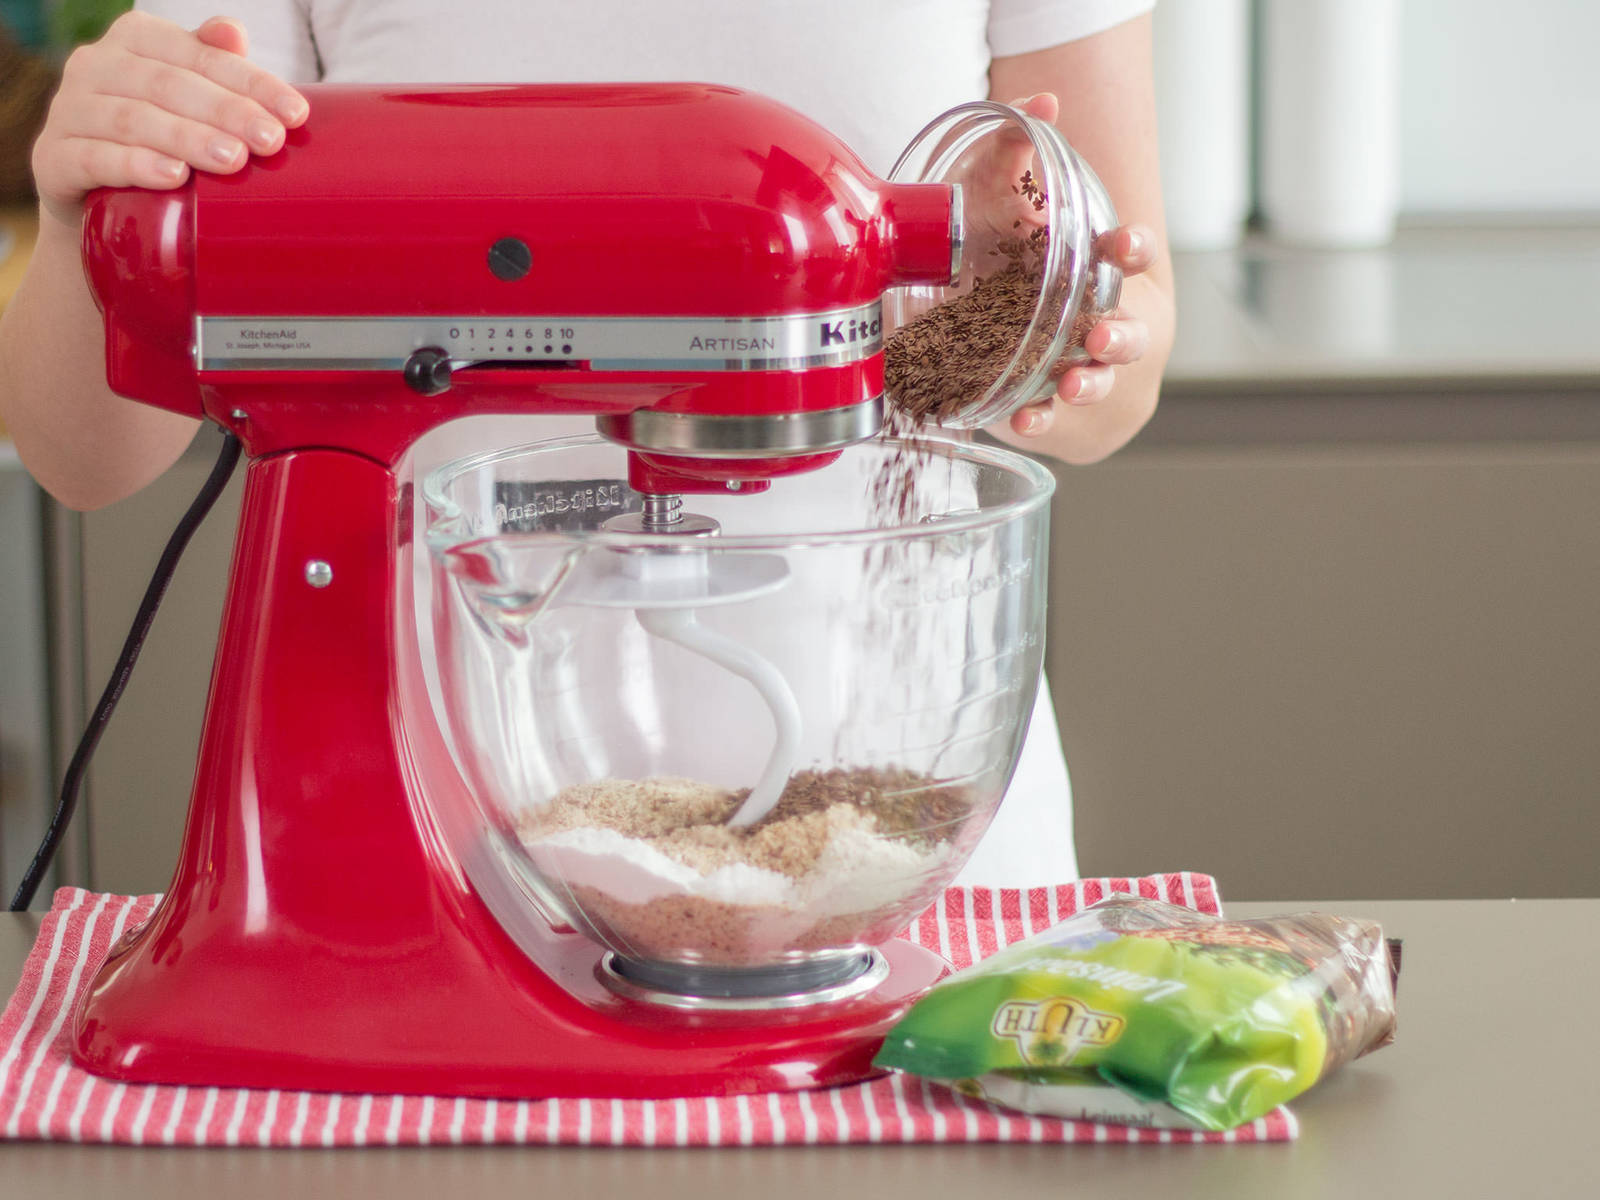 Preheat oven to 180°C/350°F. In a standing mixer, add buckwheat flour, wheat bran, ground almonds, flax seed, baking powder, and sea salt. Beat for approx. 1 – 2 min. to combine.